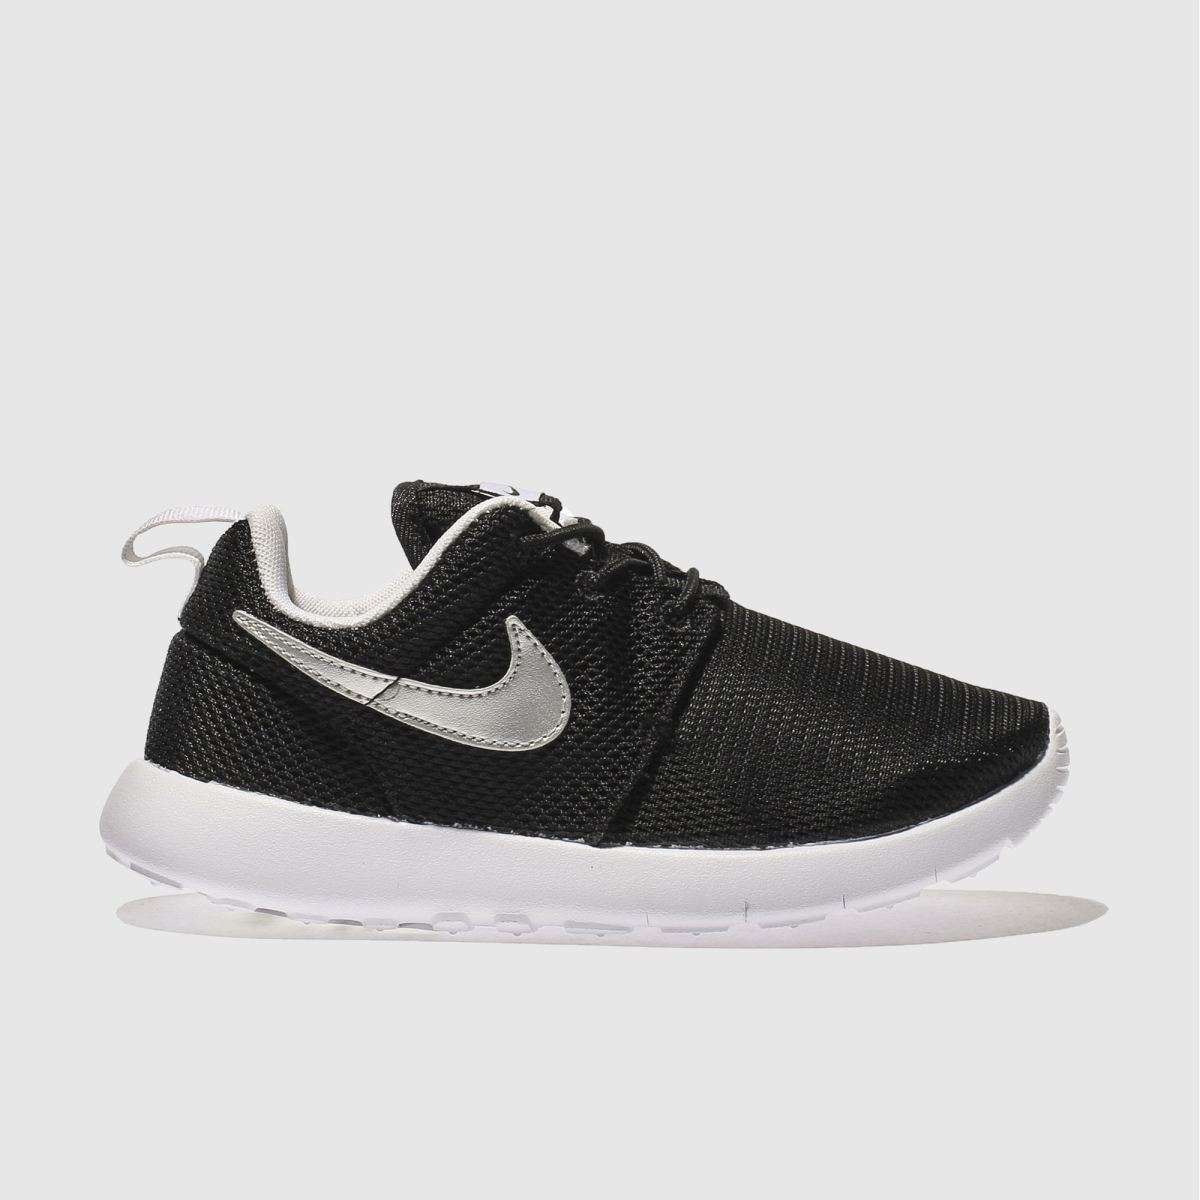 Nike Roshe Run Trainers | Nike Shoes for Men, Women & Kids | schuh